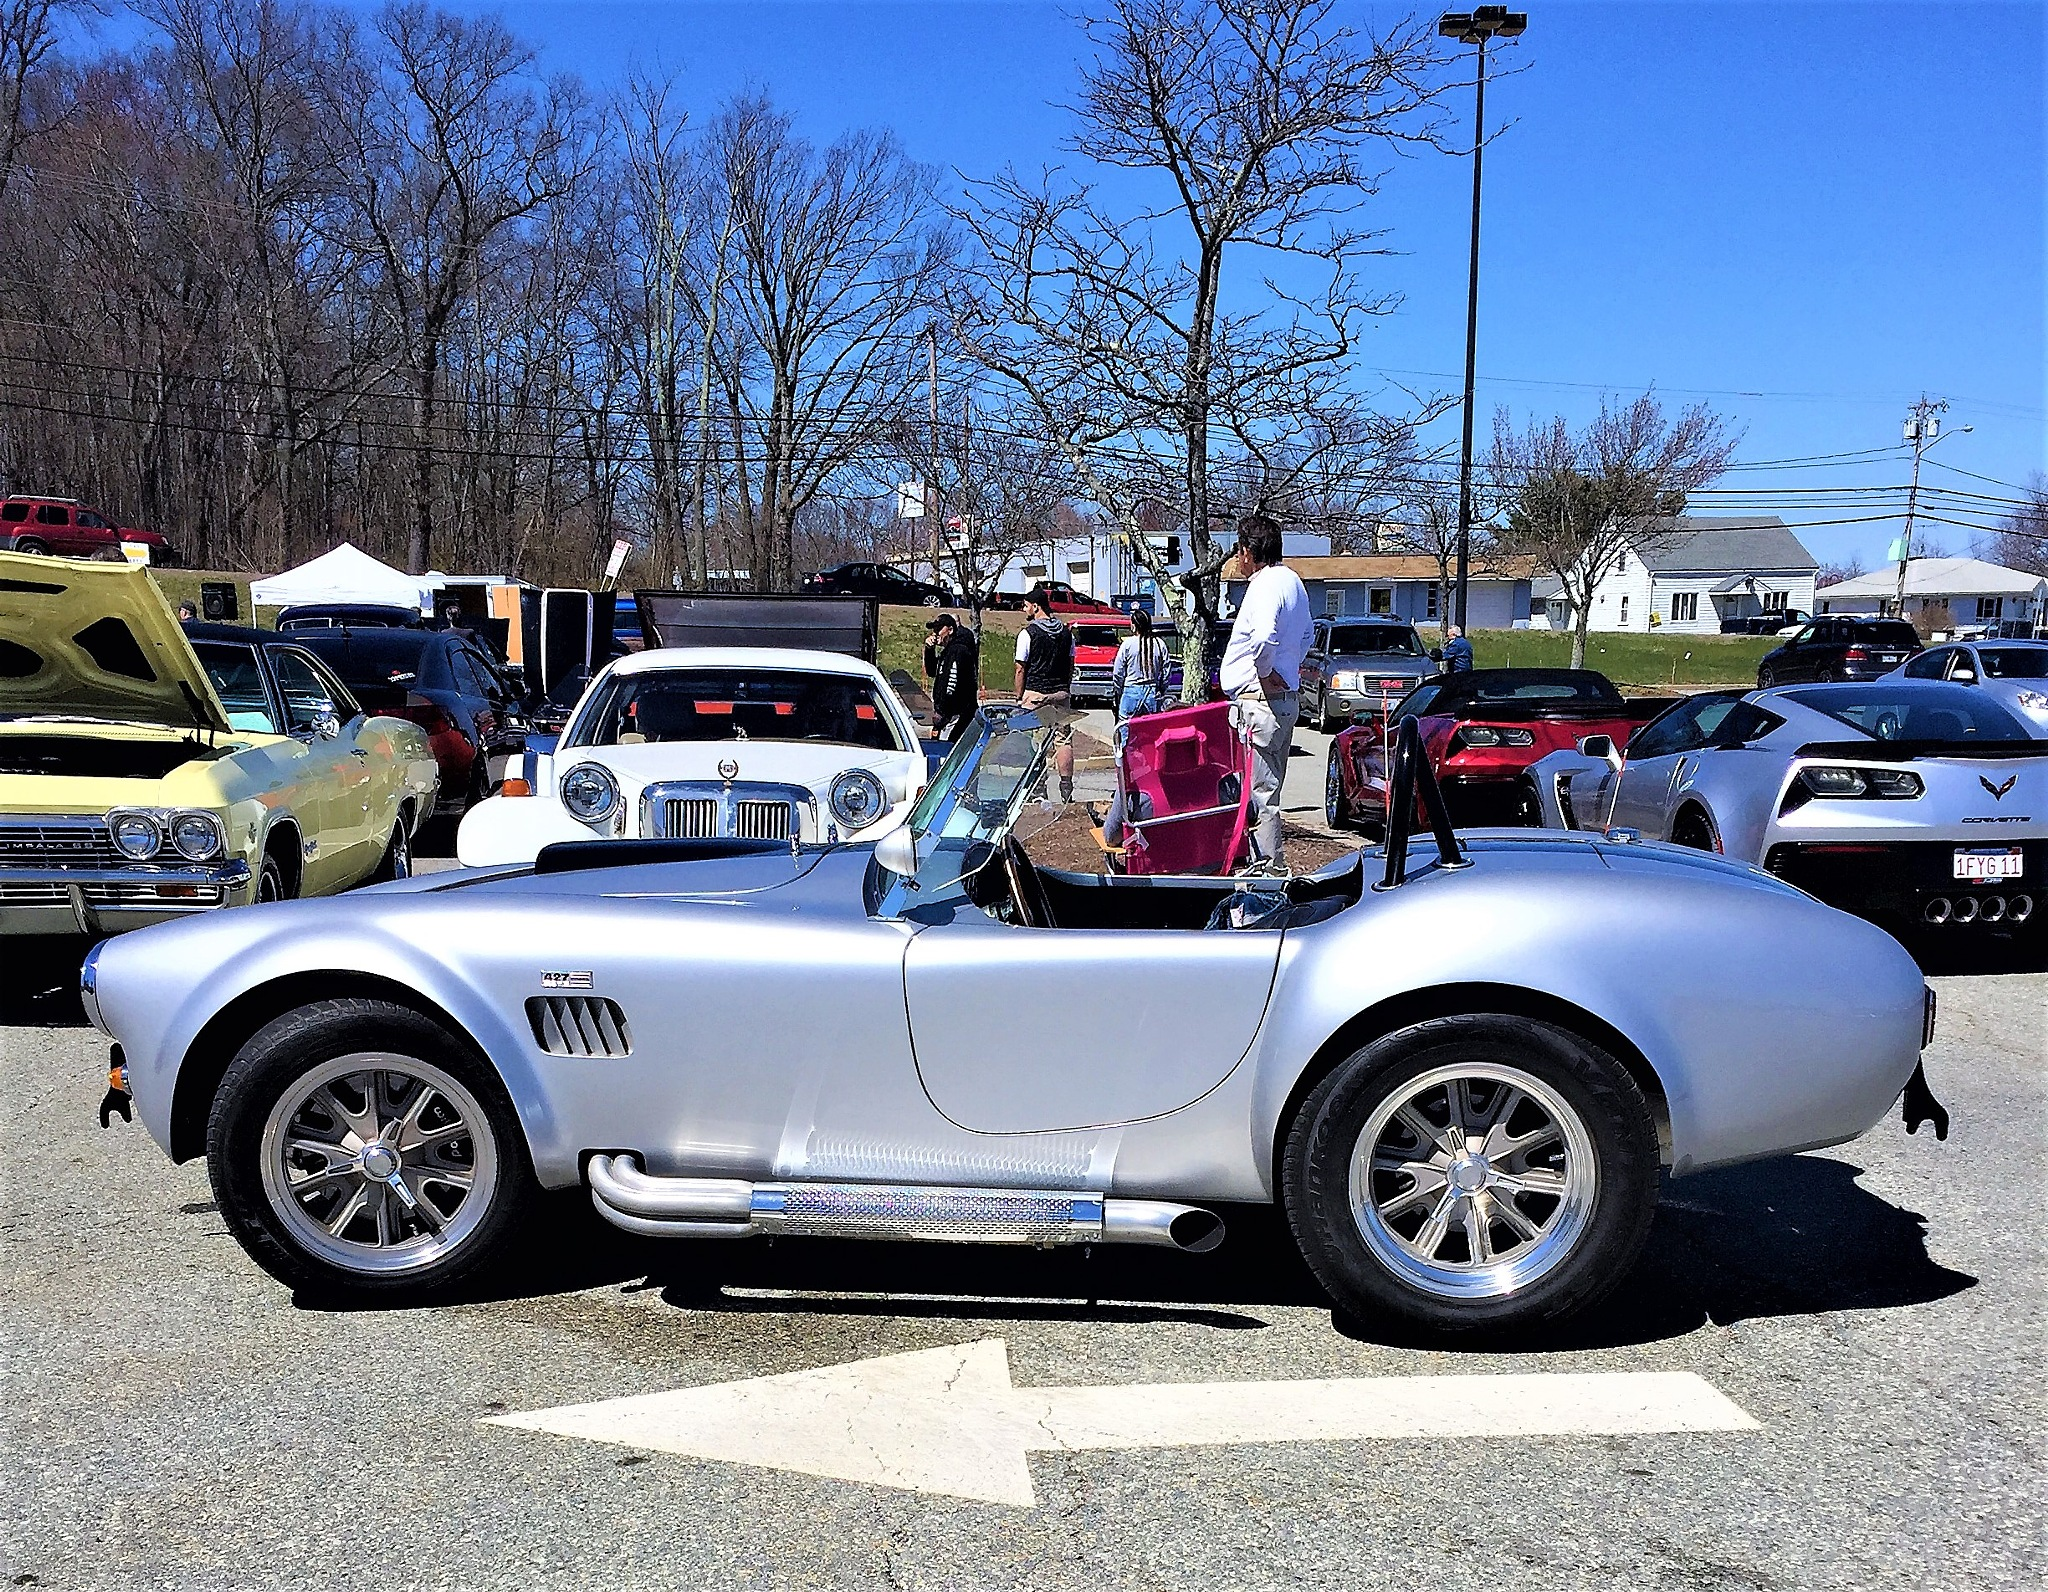 Vintage cars by Dshawn732